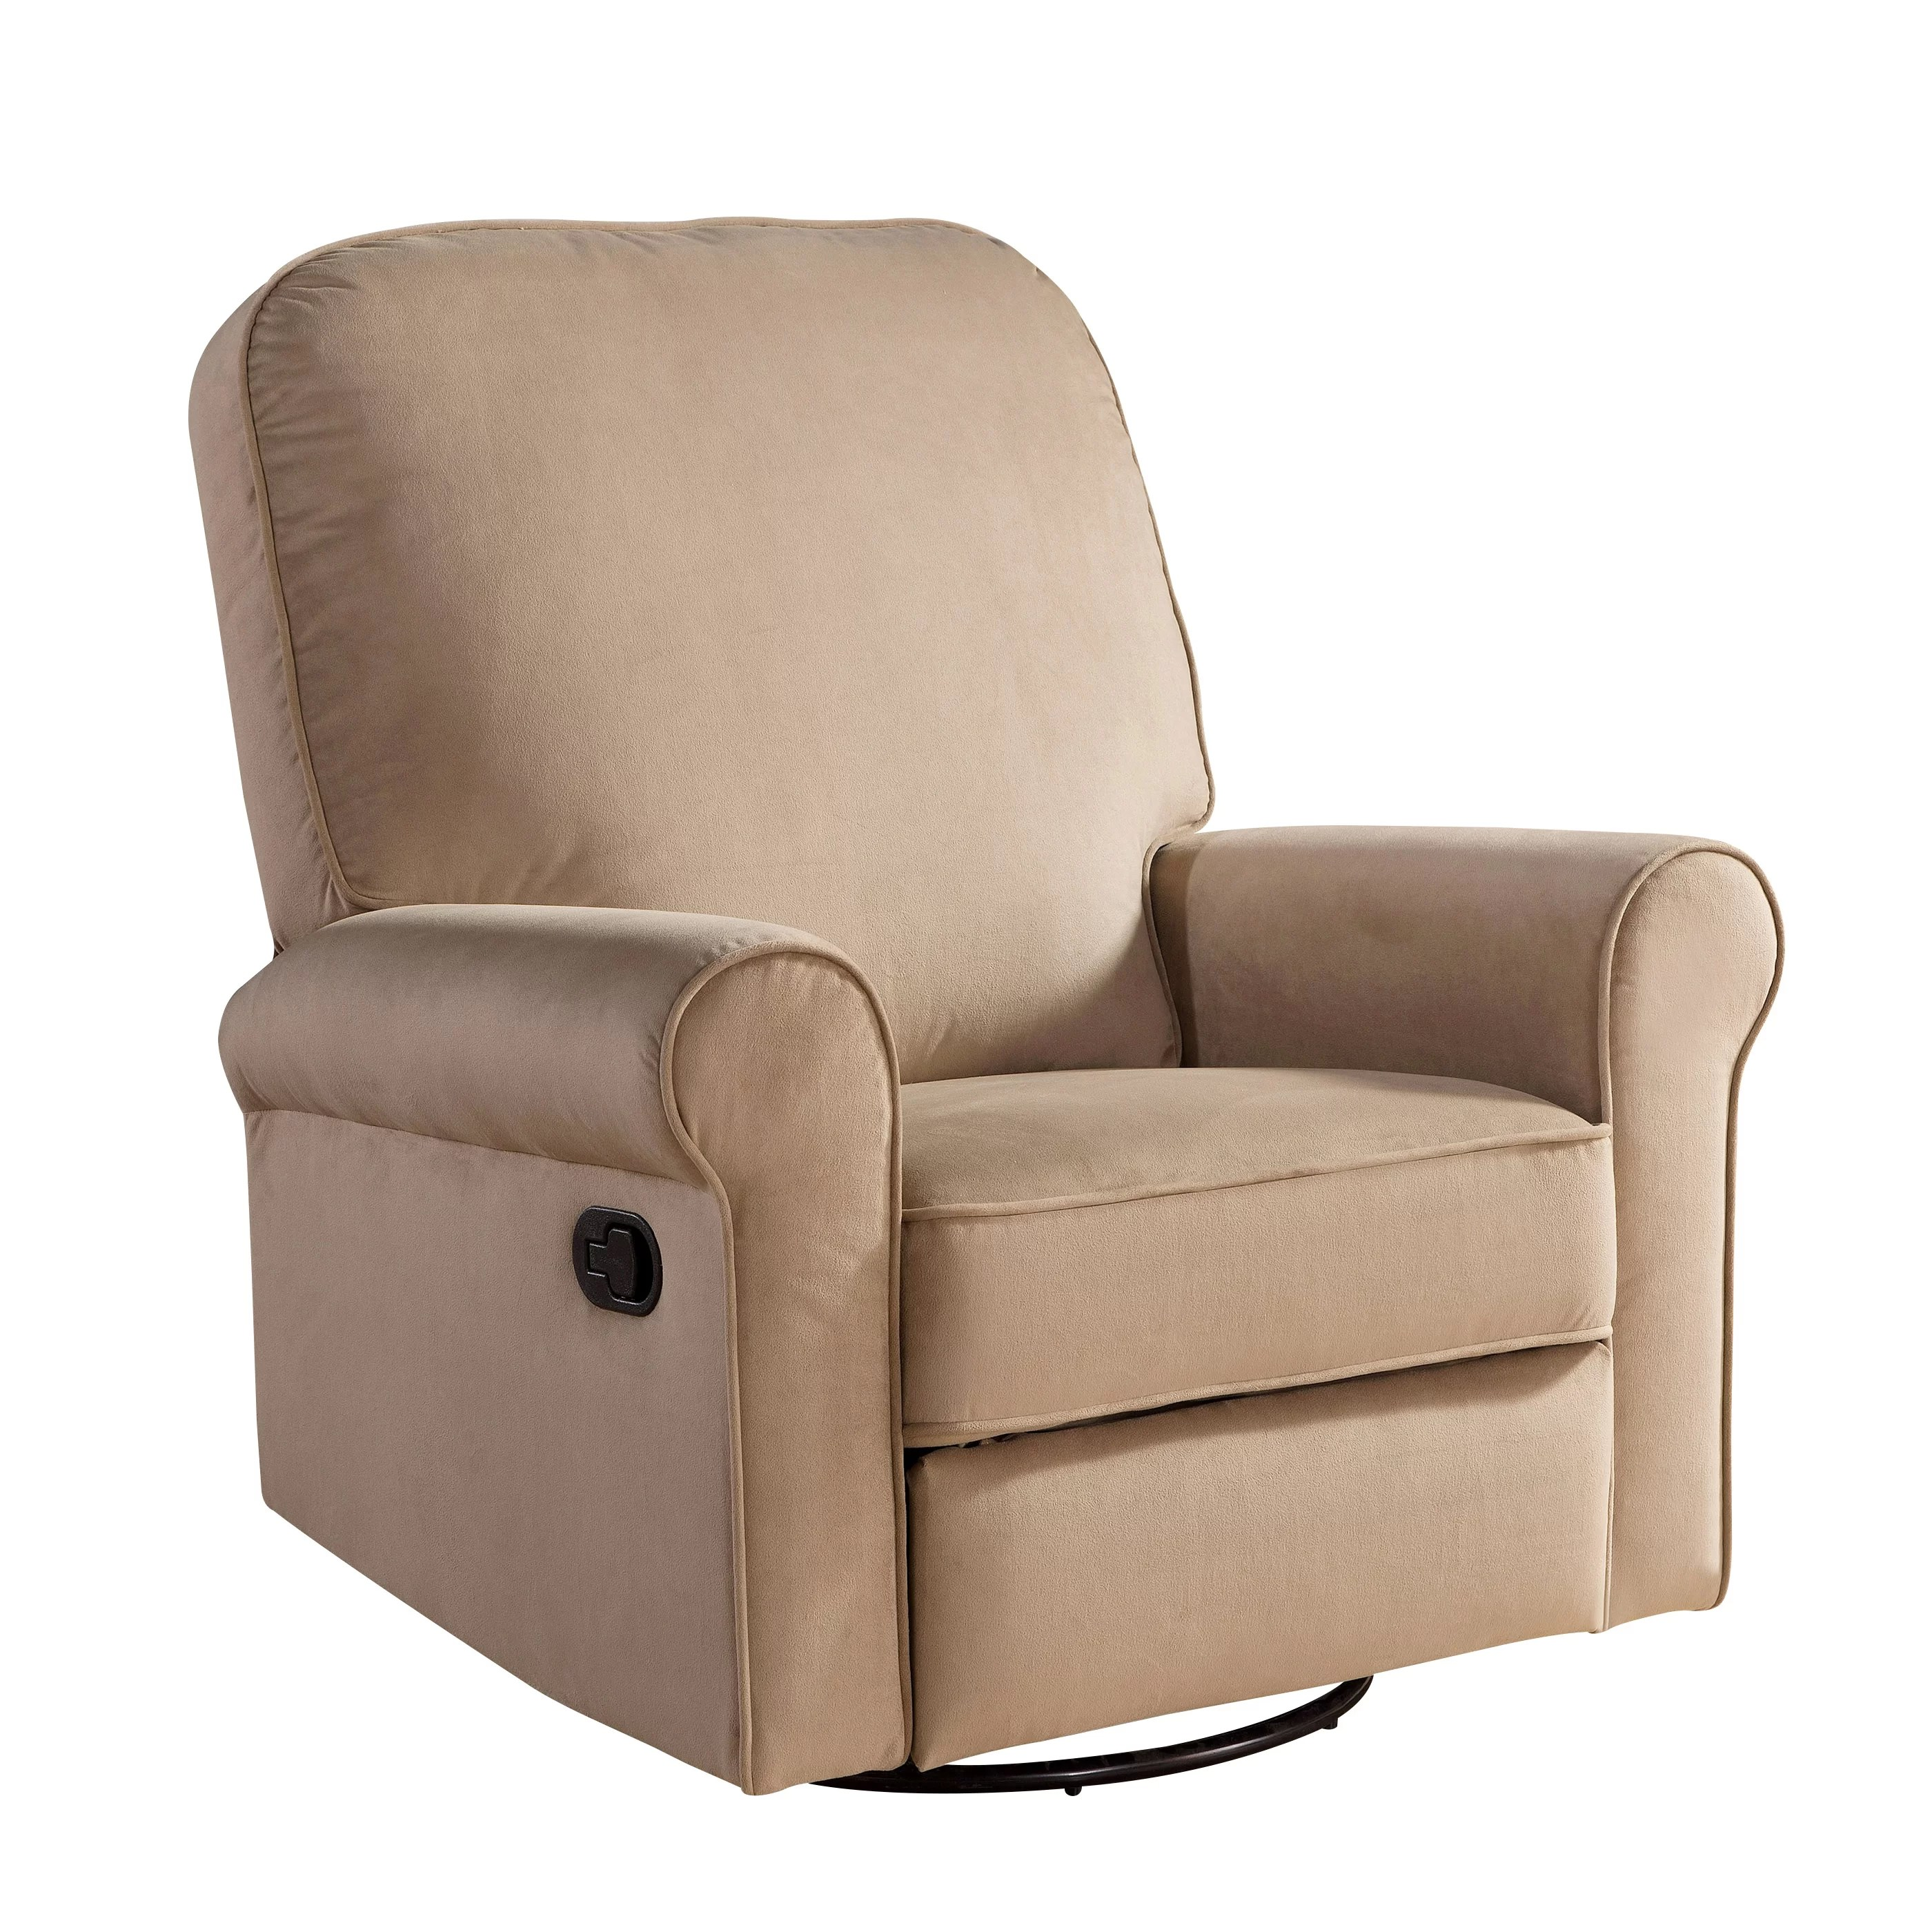 abbyson living thatcher fabric rocking chair in beige steel folding with tablet arm mathers swivel glider recliner wayfair